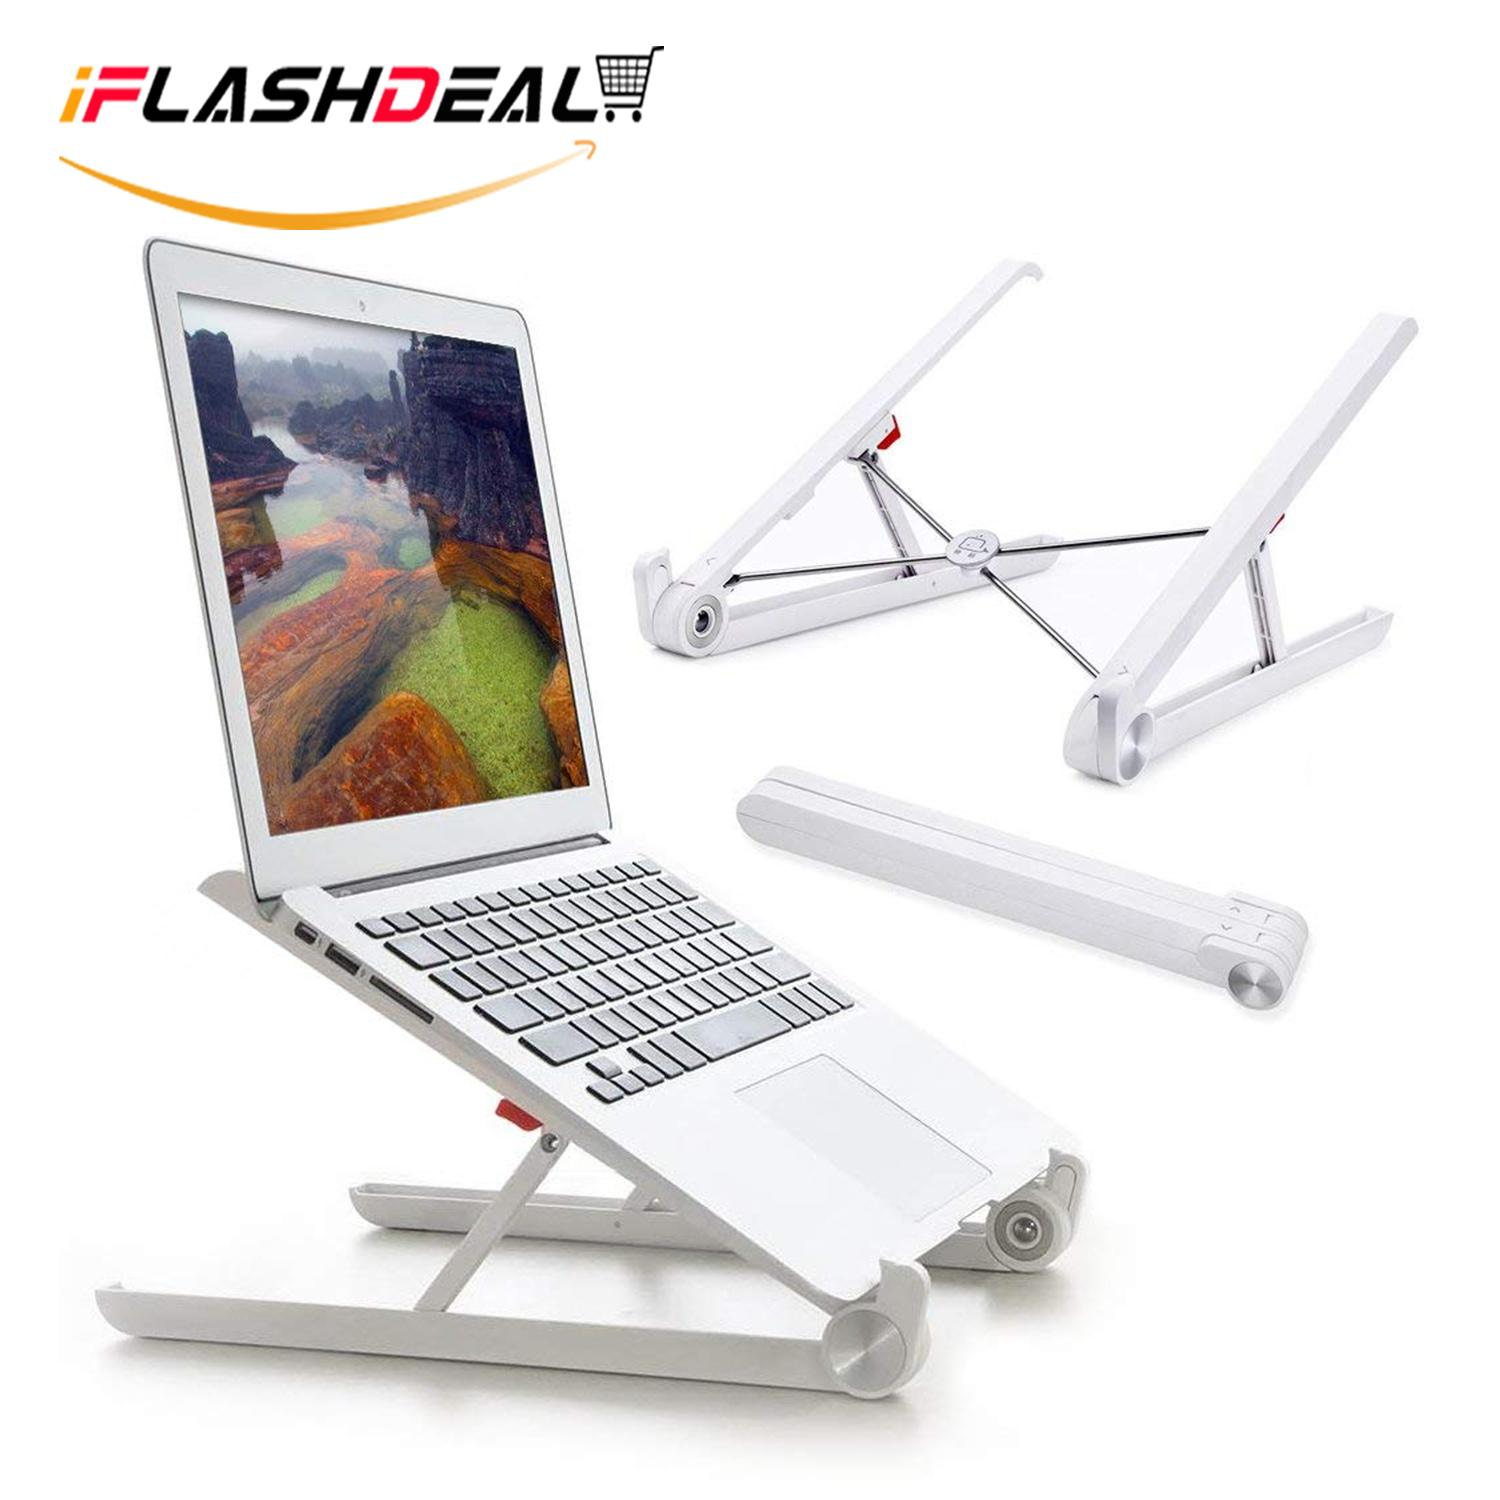 iFlashDeal Laptop Stand, Laptop Portabel Berdiri Lipat Desktop Notebook Dudukan Yang Dapat Disesuaikan Eye-Level Desain Ergonomis, laptop Portabel Riser untuk Macbook, Notebook Komputer PC Ipad Tablet